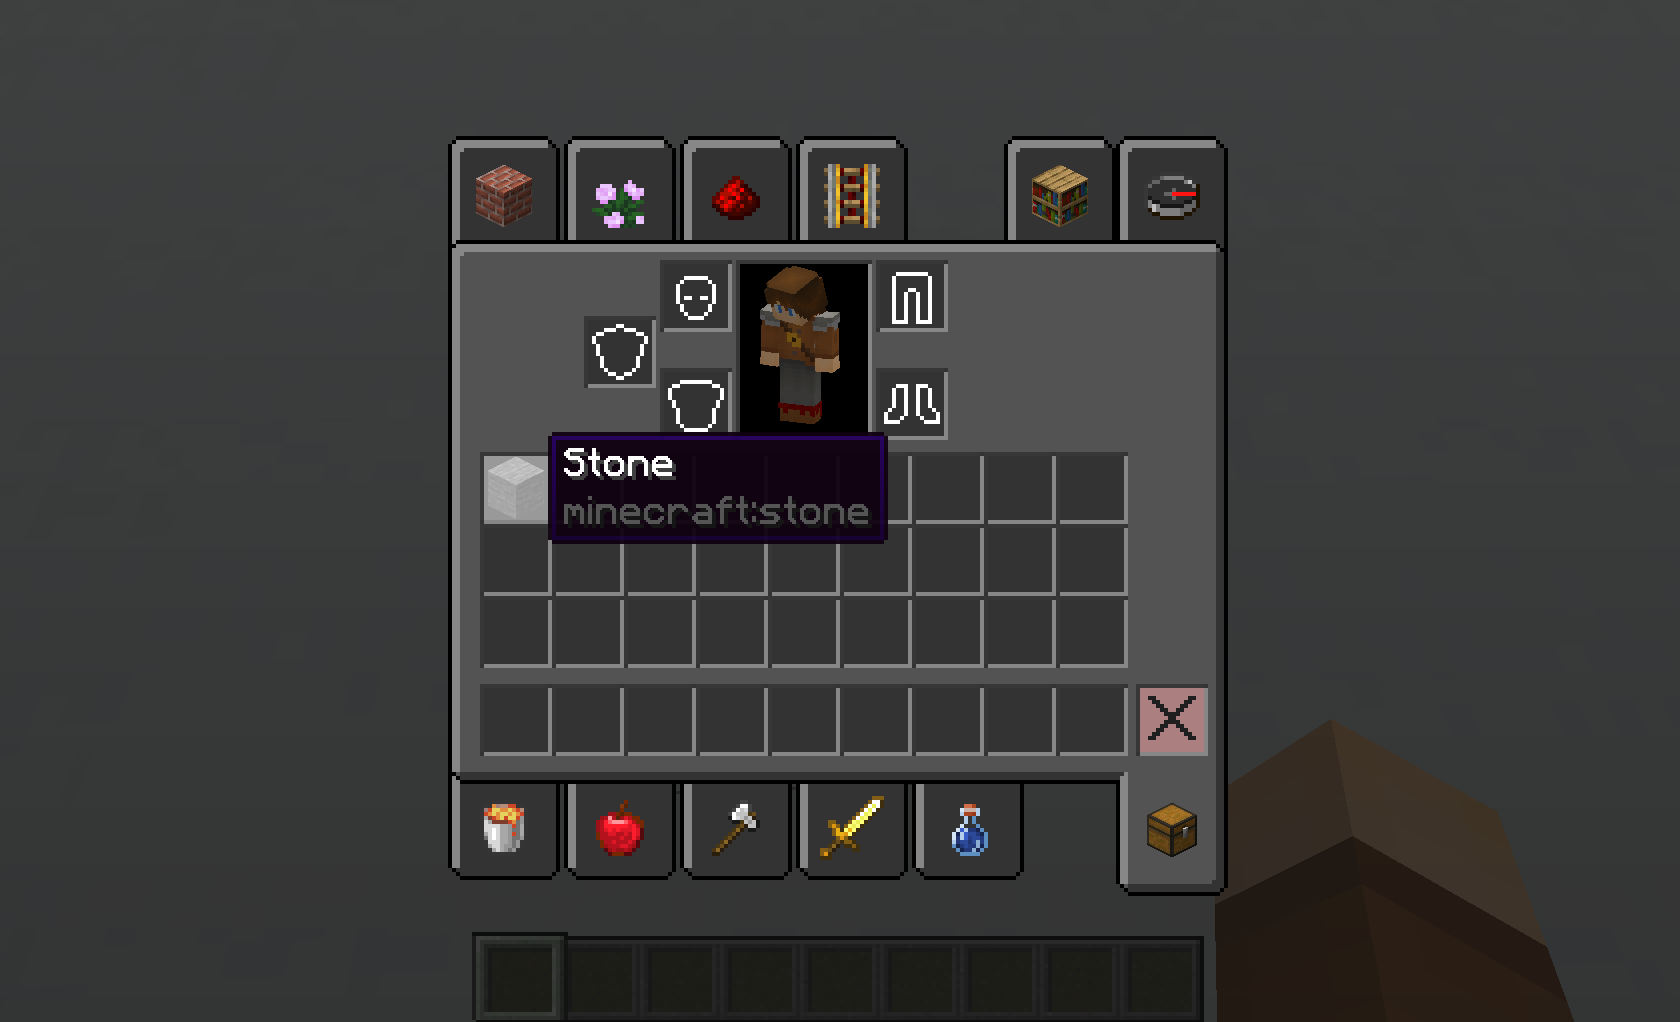 MC-156644] Shift-clicking item from inventory to hot-bar while